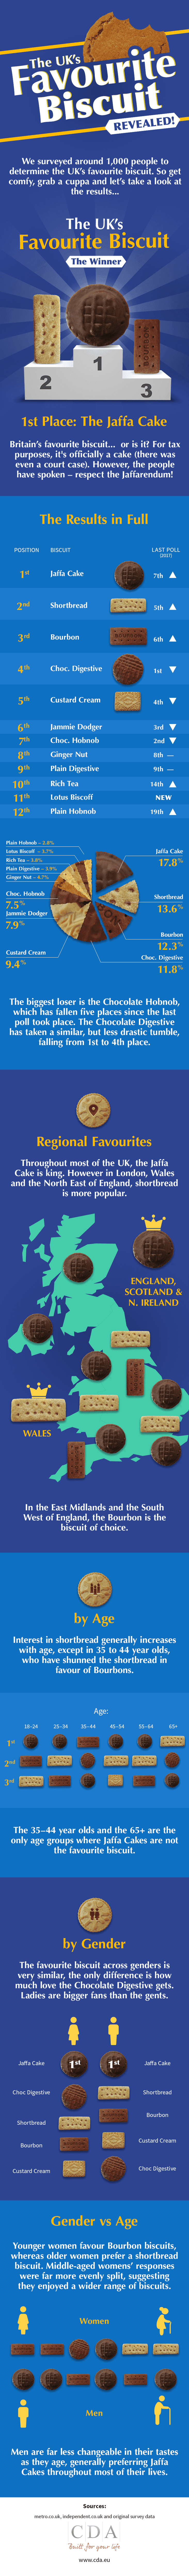 https://www.cda.eu/blog/the-uks-favourite-biscuit-2019-revealed/